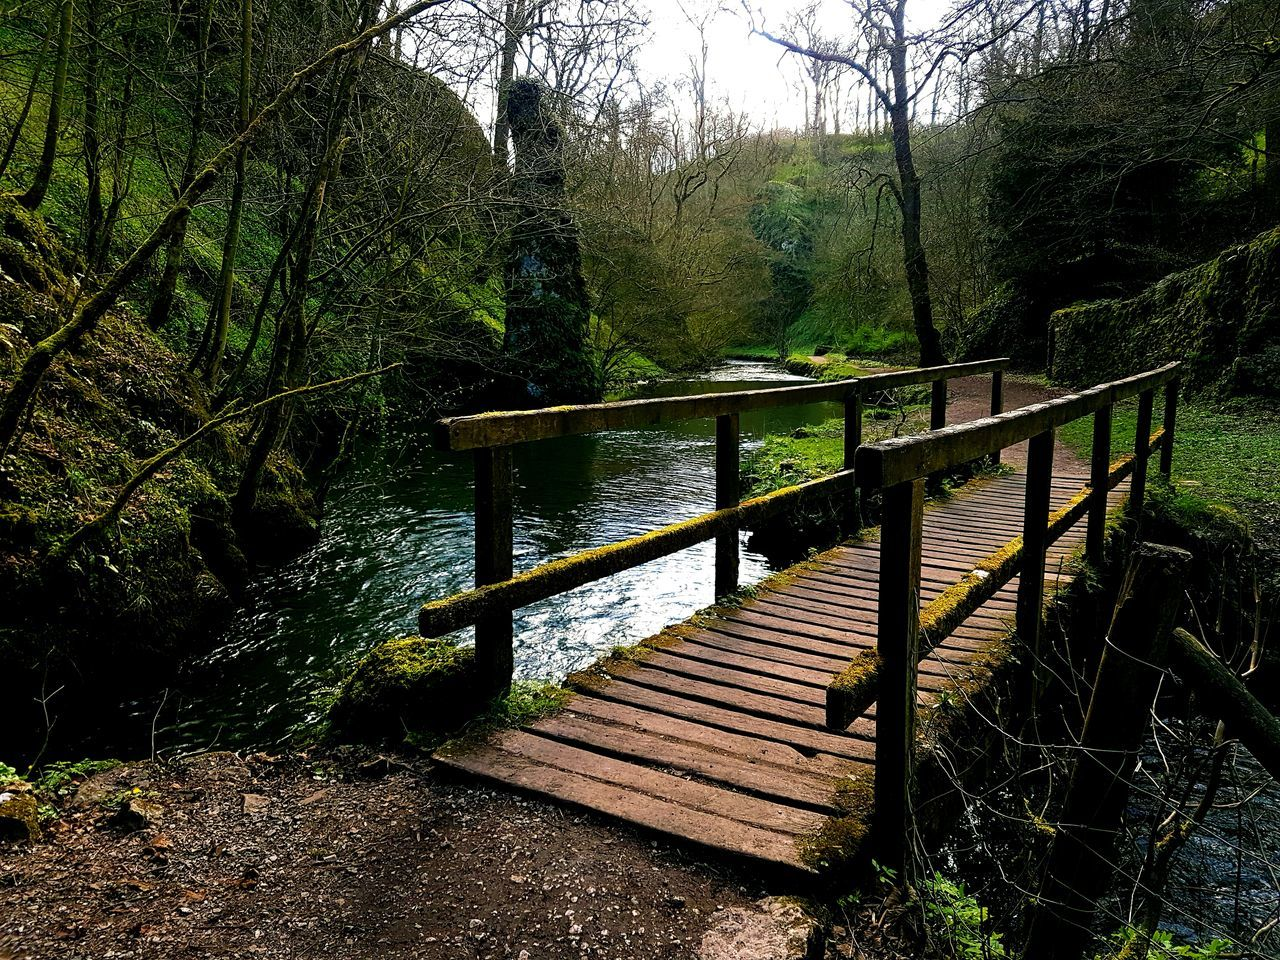 Riverbank Beauty In Nature Railing Bridge - Man Made Structure Nature Tranquility S7 Edge S7 Edge Photography